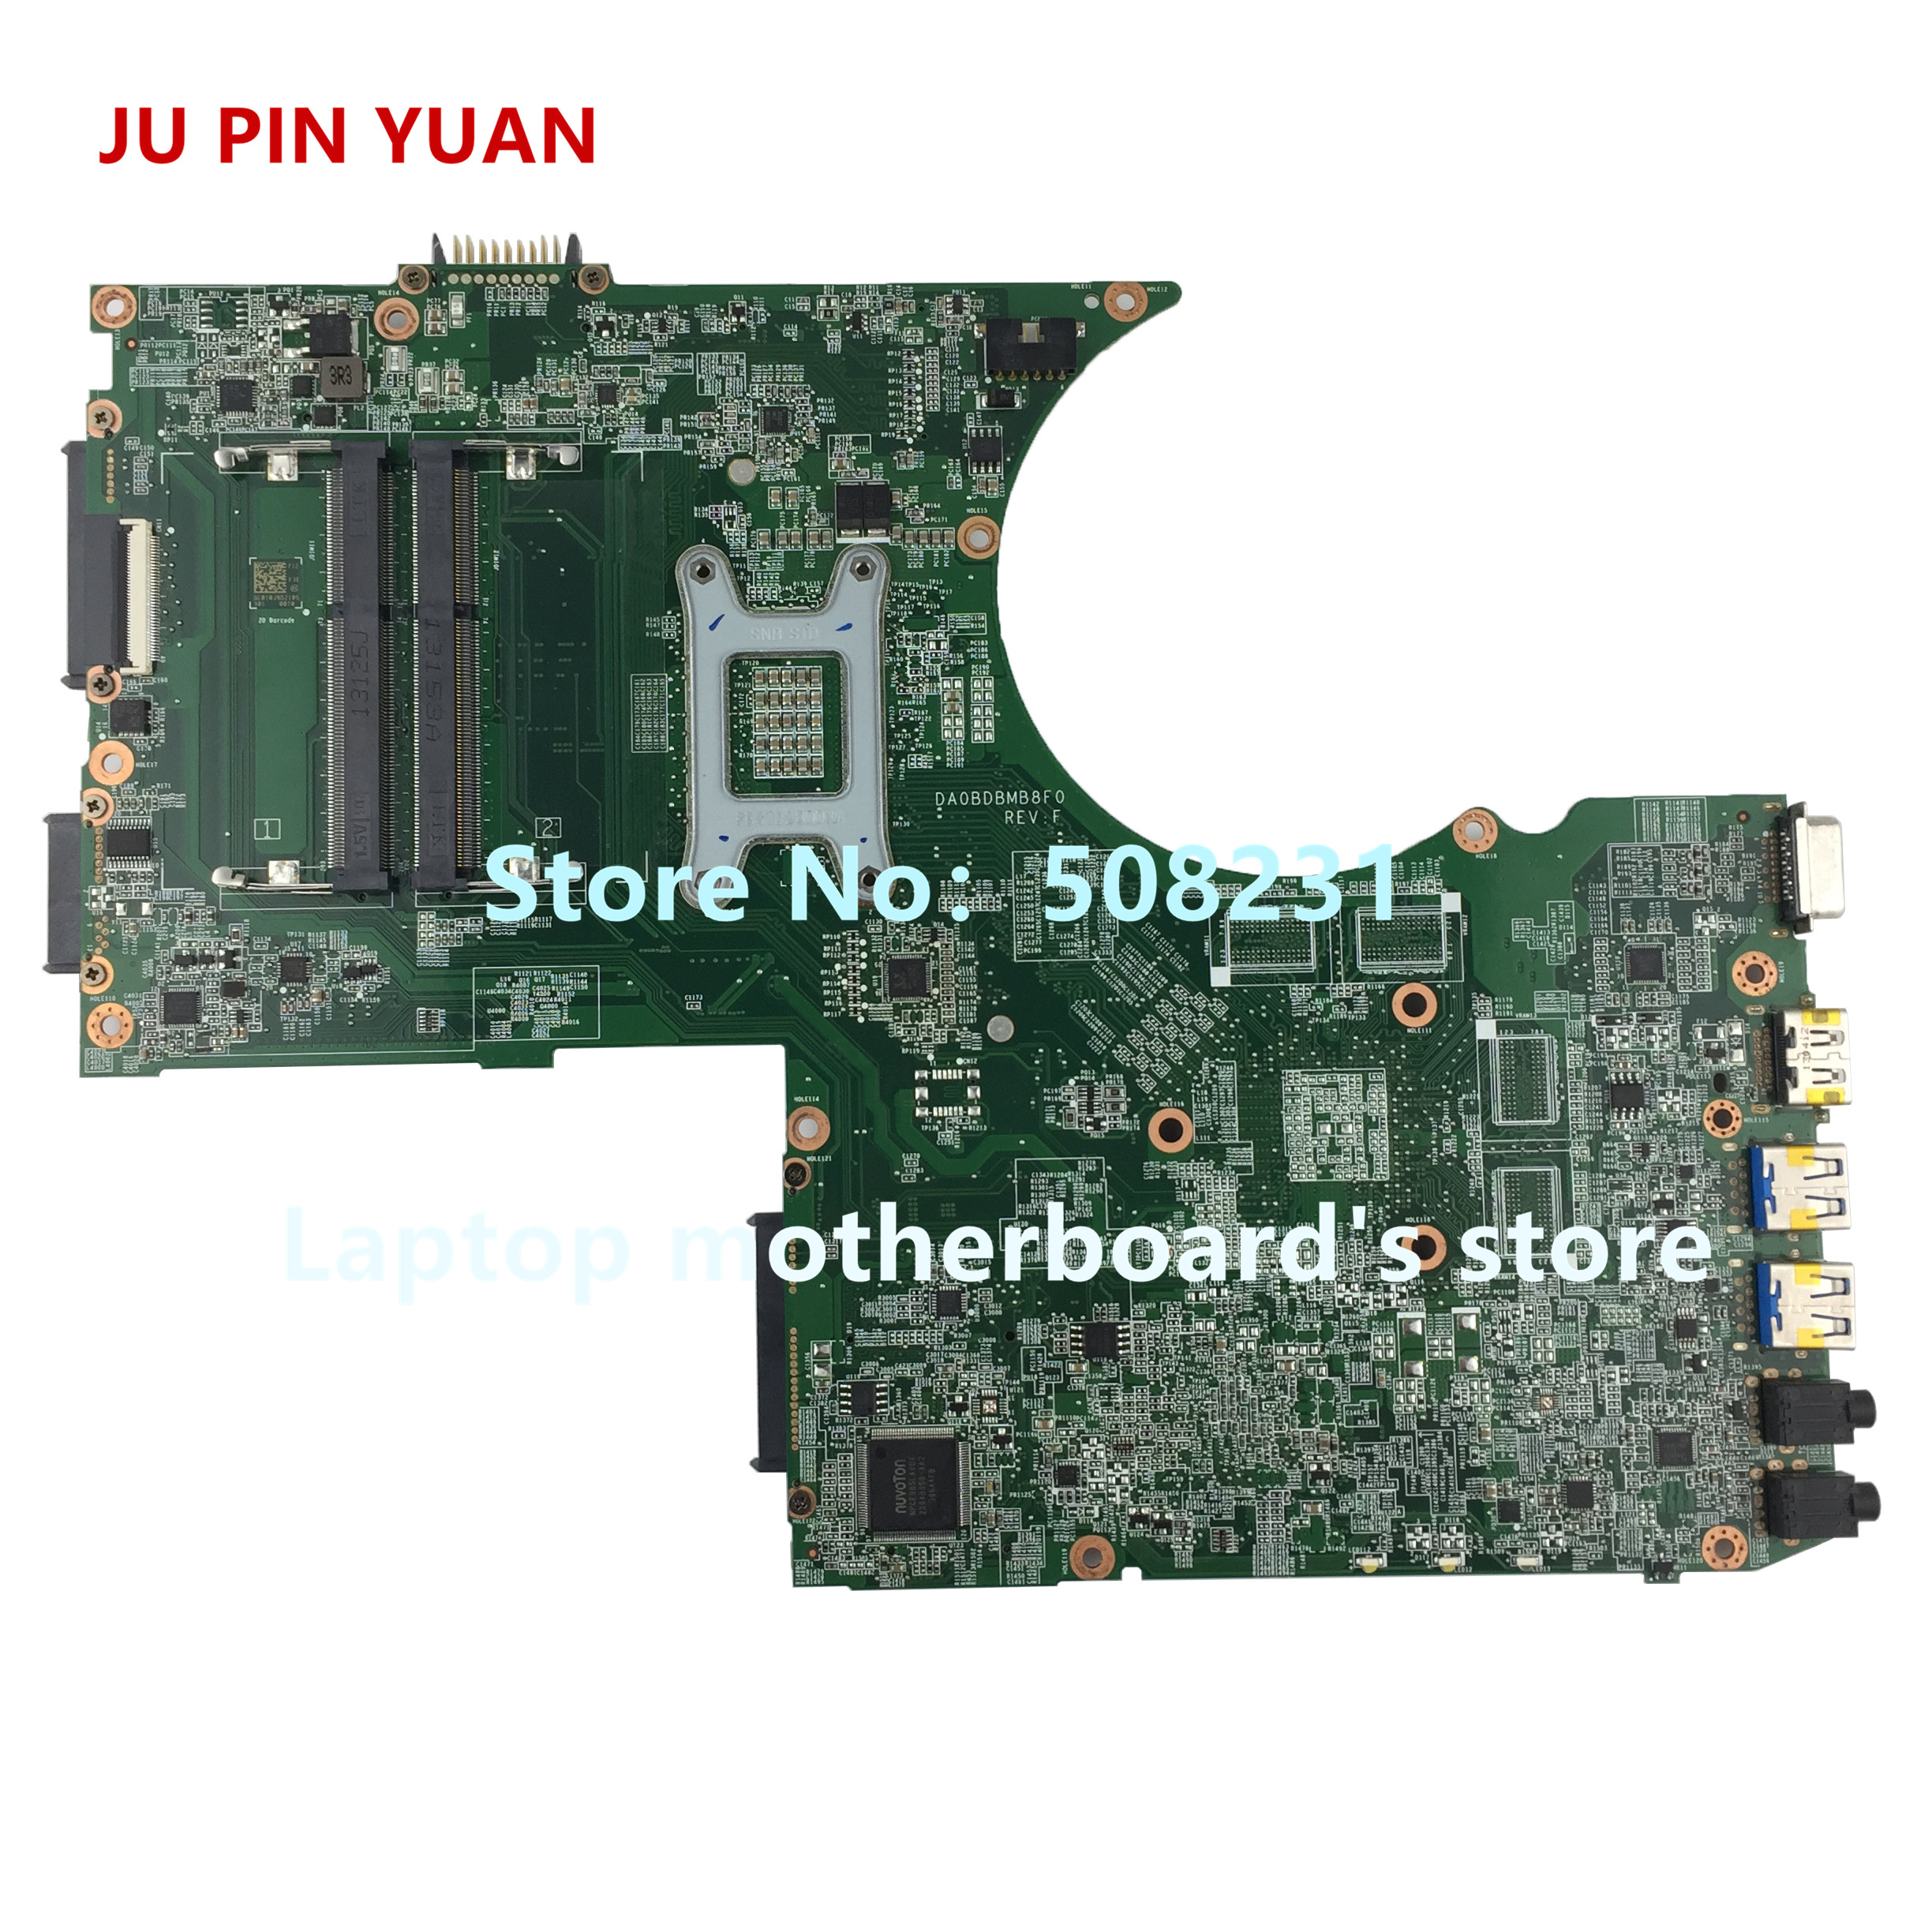 Купить с кэшбэком JU PIN YUAN A000241250 For toshiba satellite P70 P75 laptop motherboard DA0BDBMB8F0 HM86 Socket PGA 947 fully Tested